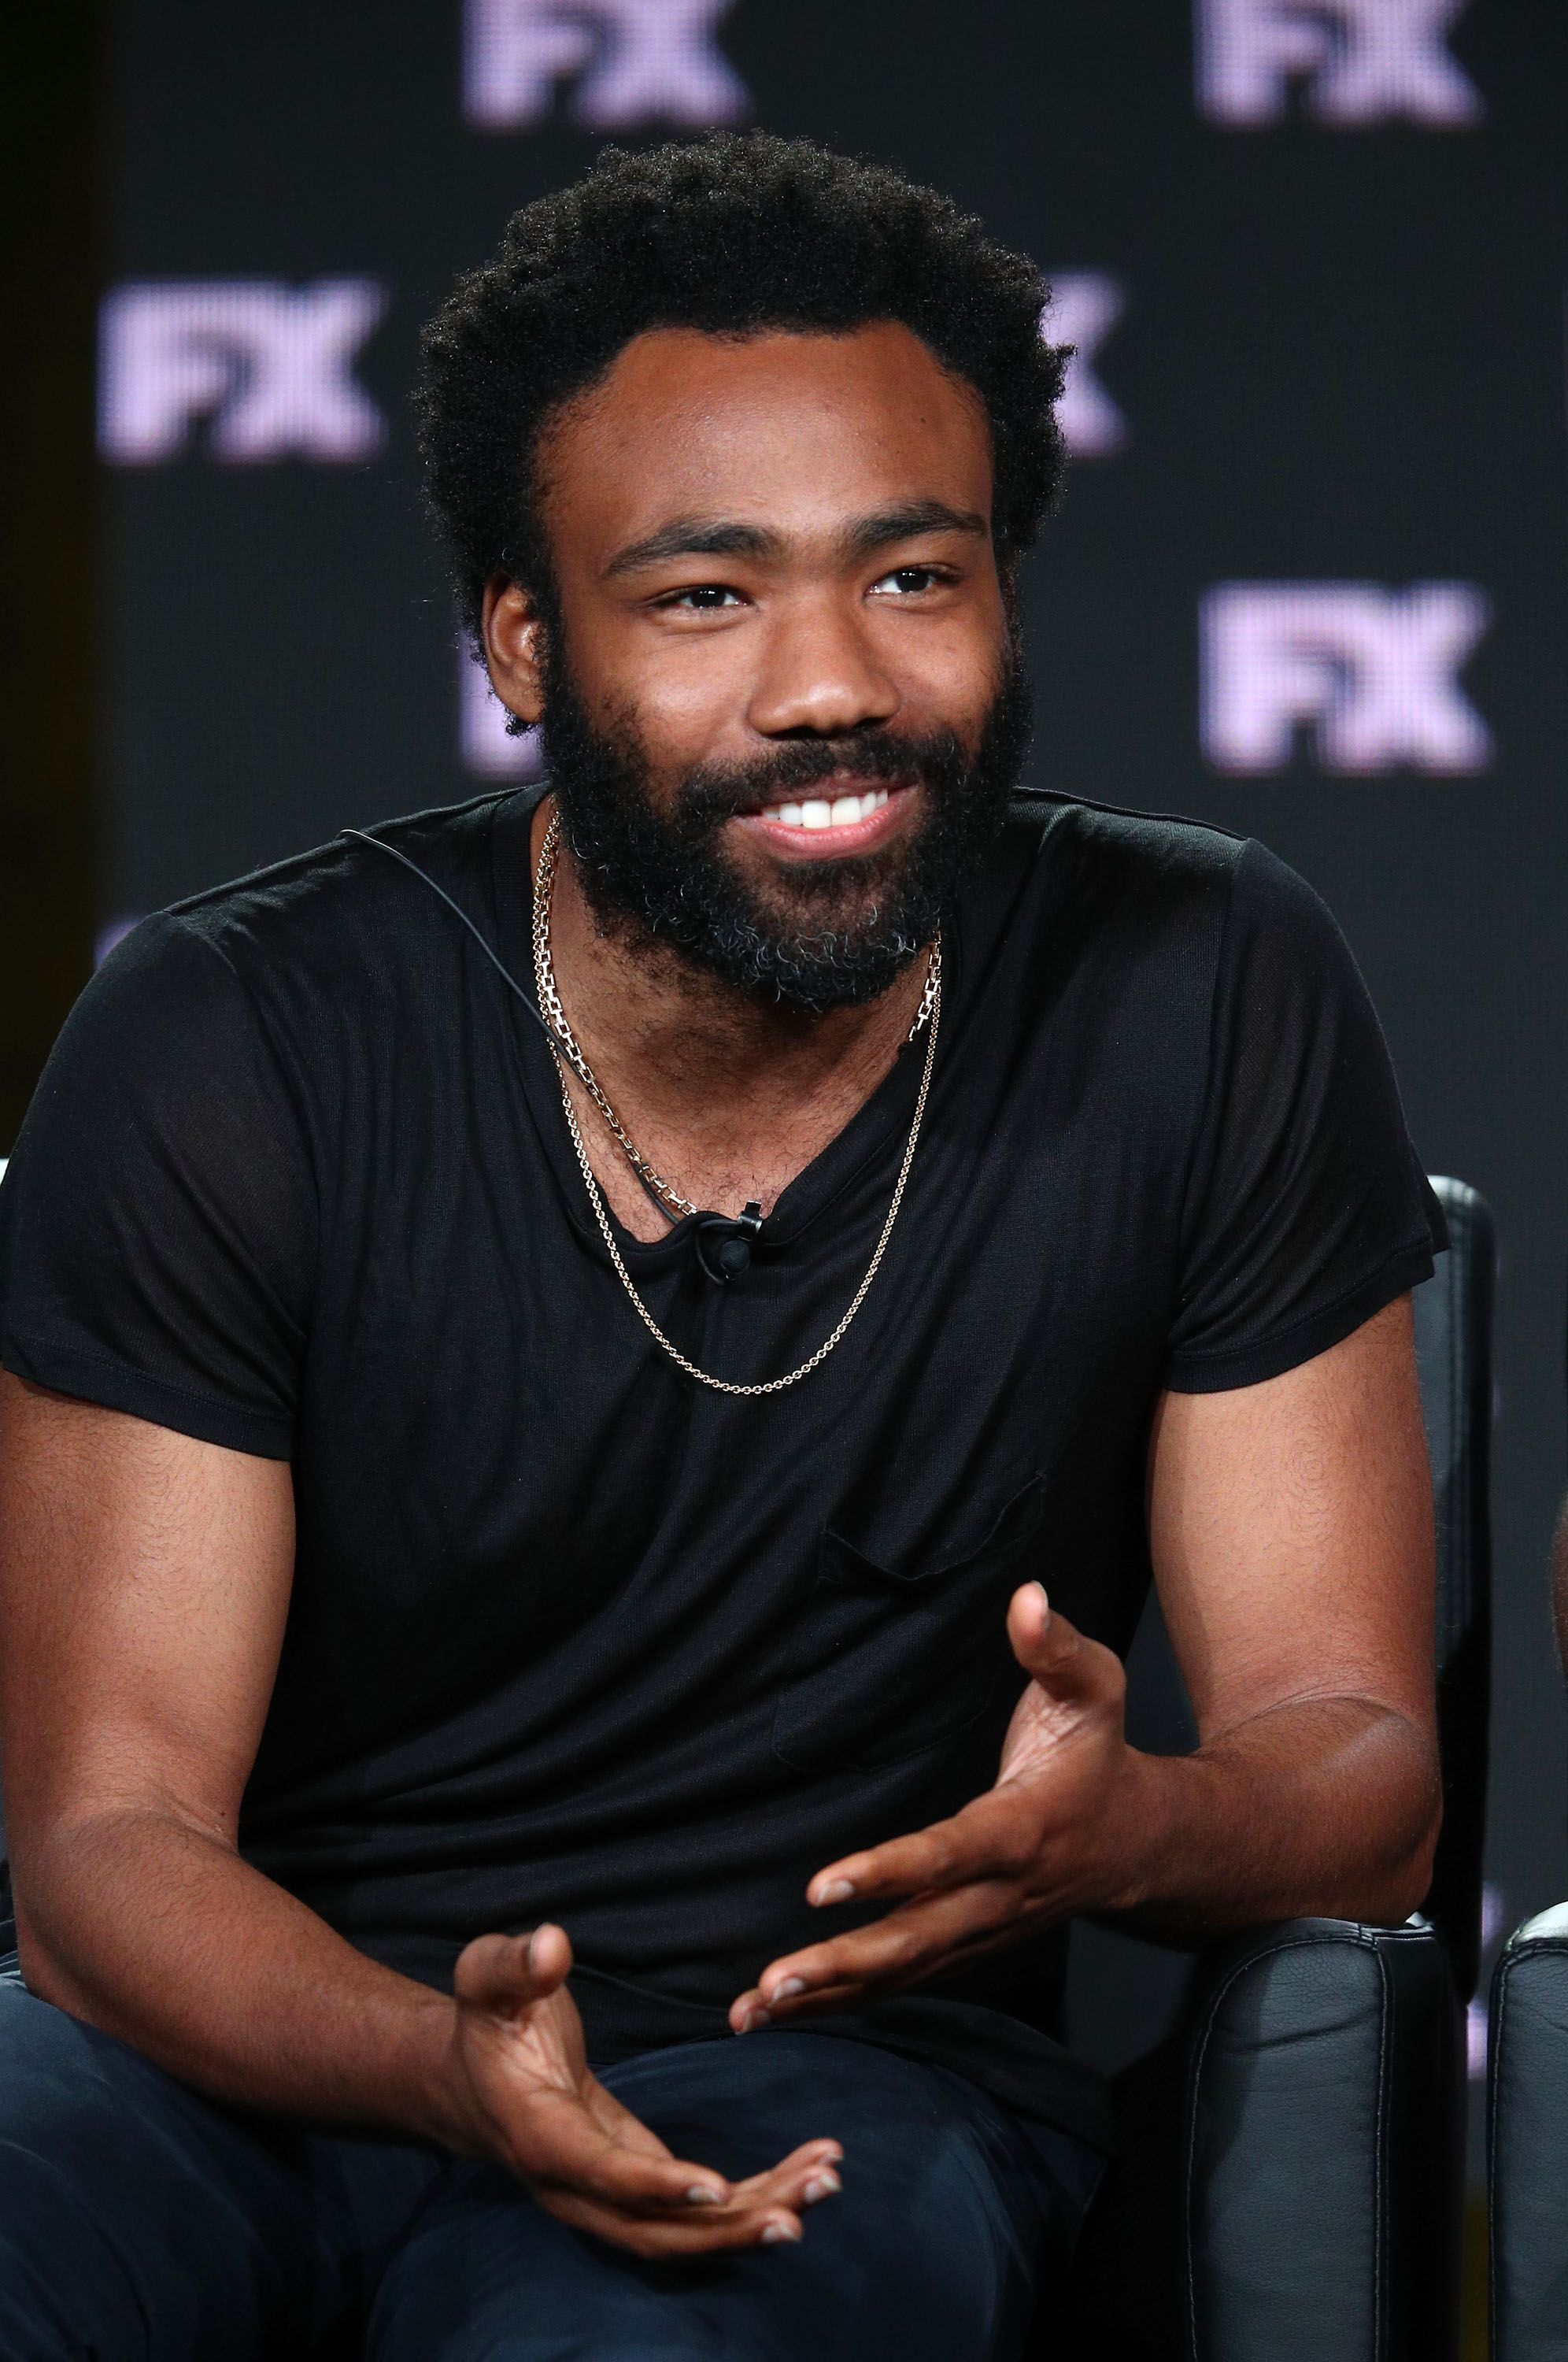 Donald-Glover-On-Playing-Lando-Calrissian-In-Solo-A-Star-Wars-Story